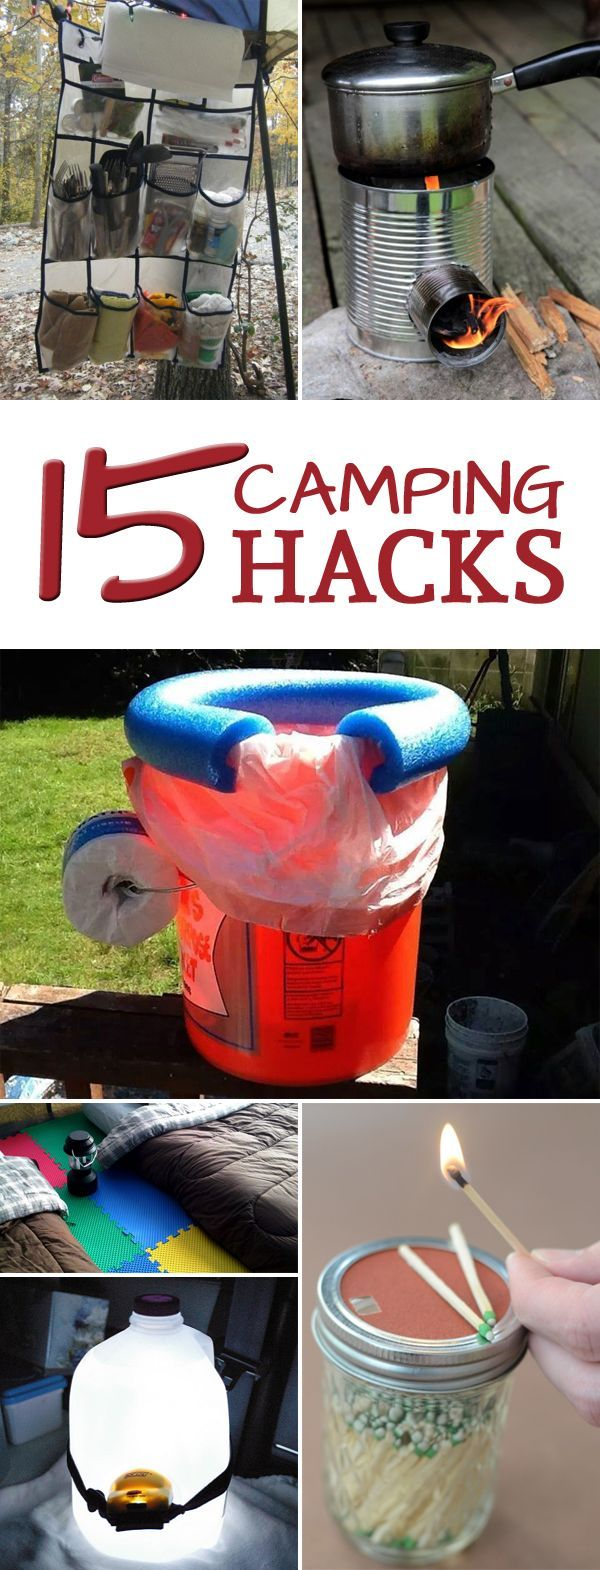 Photo of Here are some tips and tricks to make your next camping trip easier and more enjoyable …